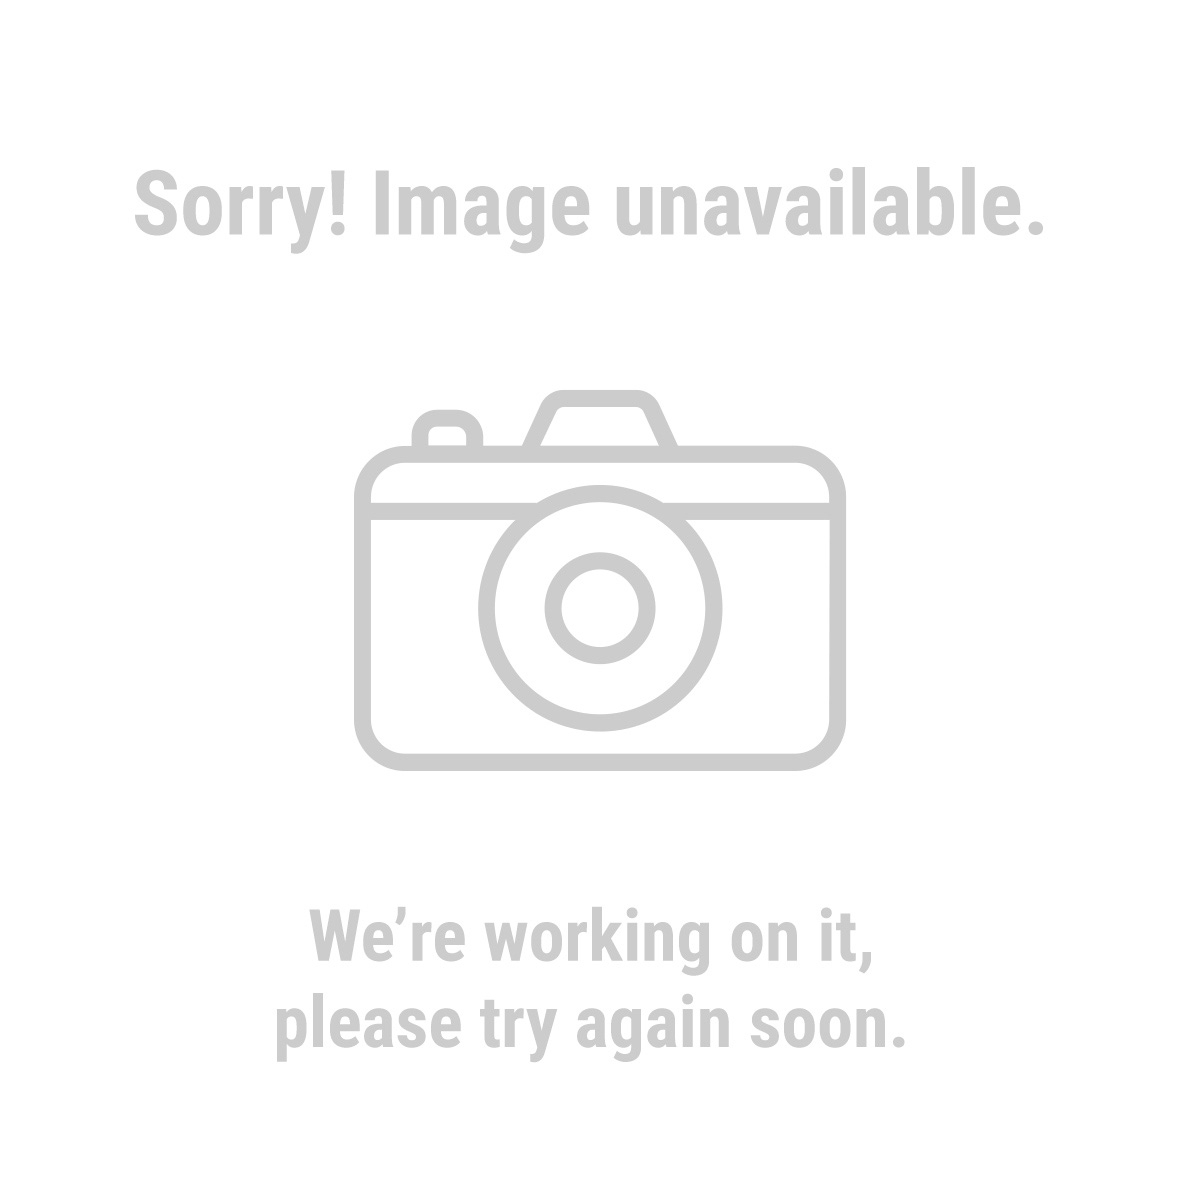 Chicago Electric 60270 25 Ft. x 12 Gauge Outdoor Extension Cord